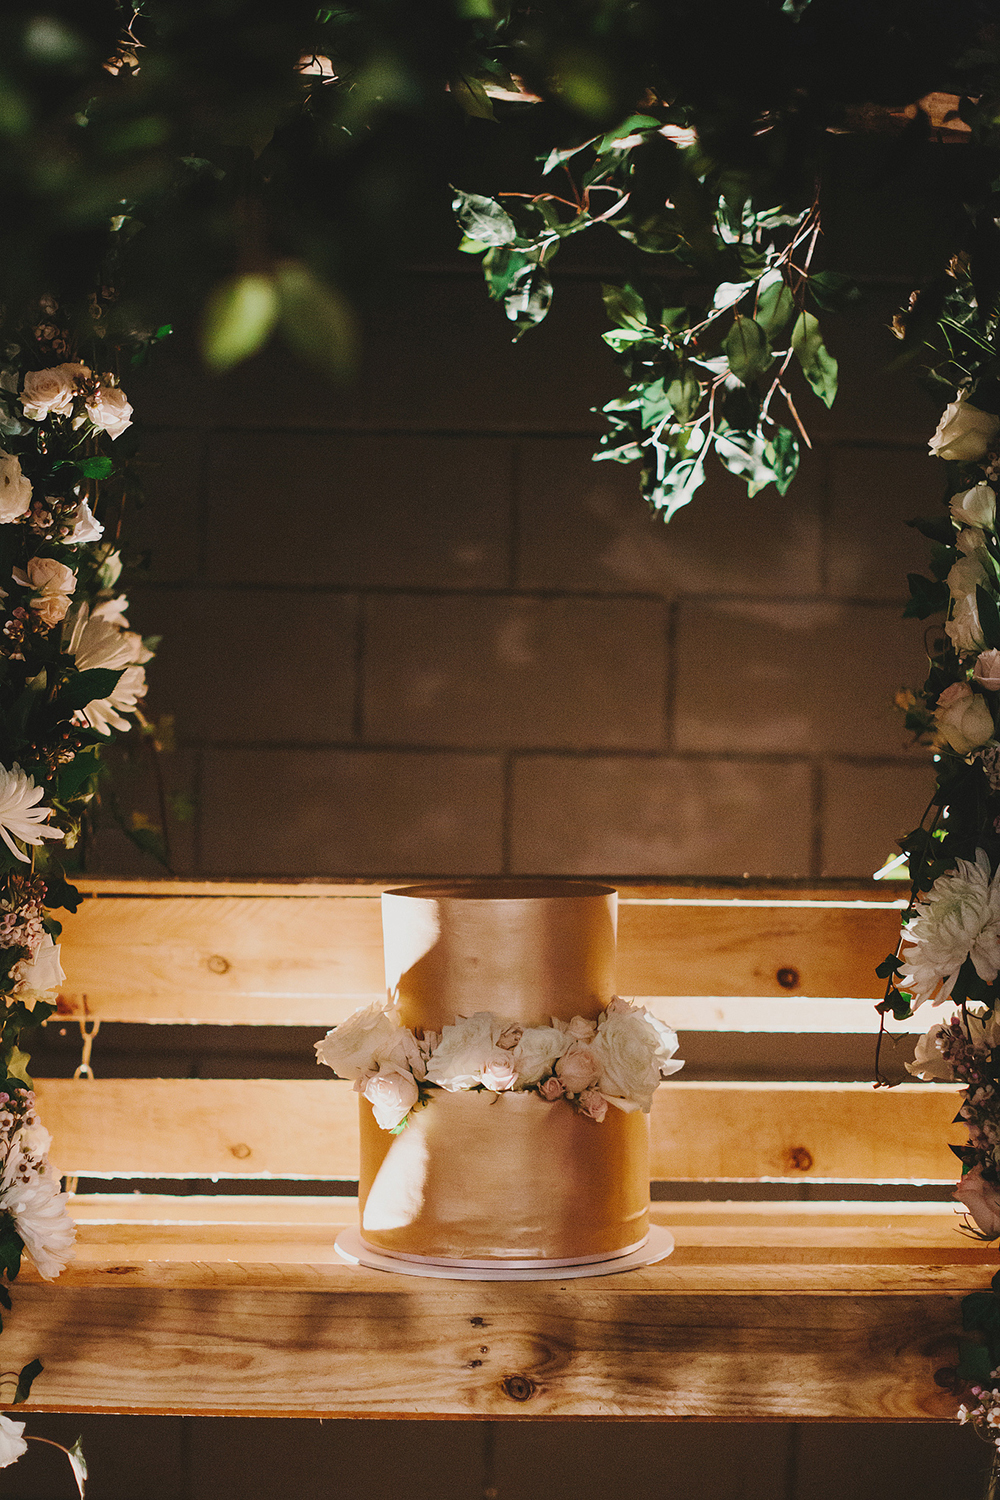 Categories: Weddings-Real Wedding: Vichi & Anthony - Photography by Lover of Mine